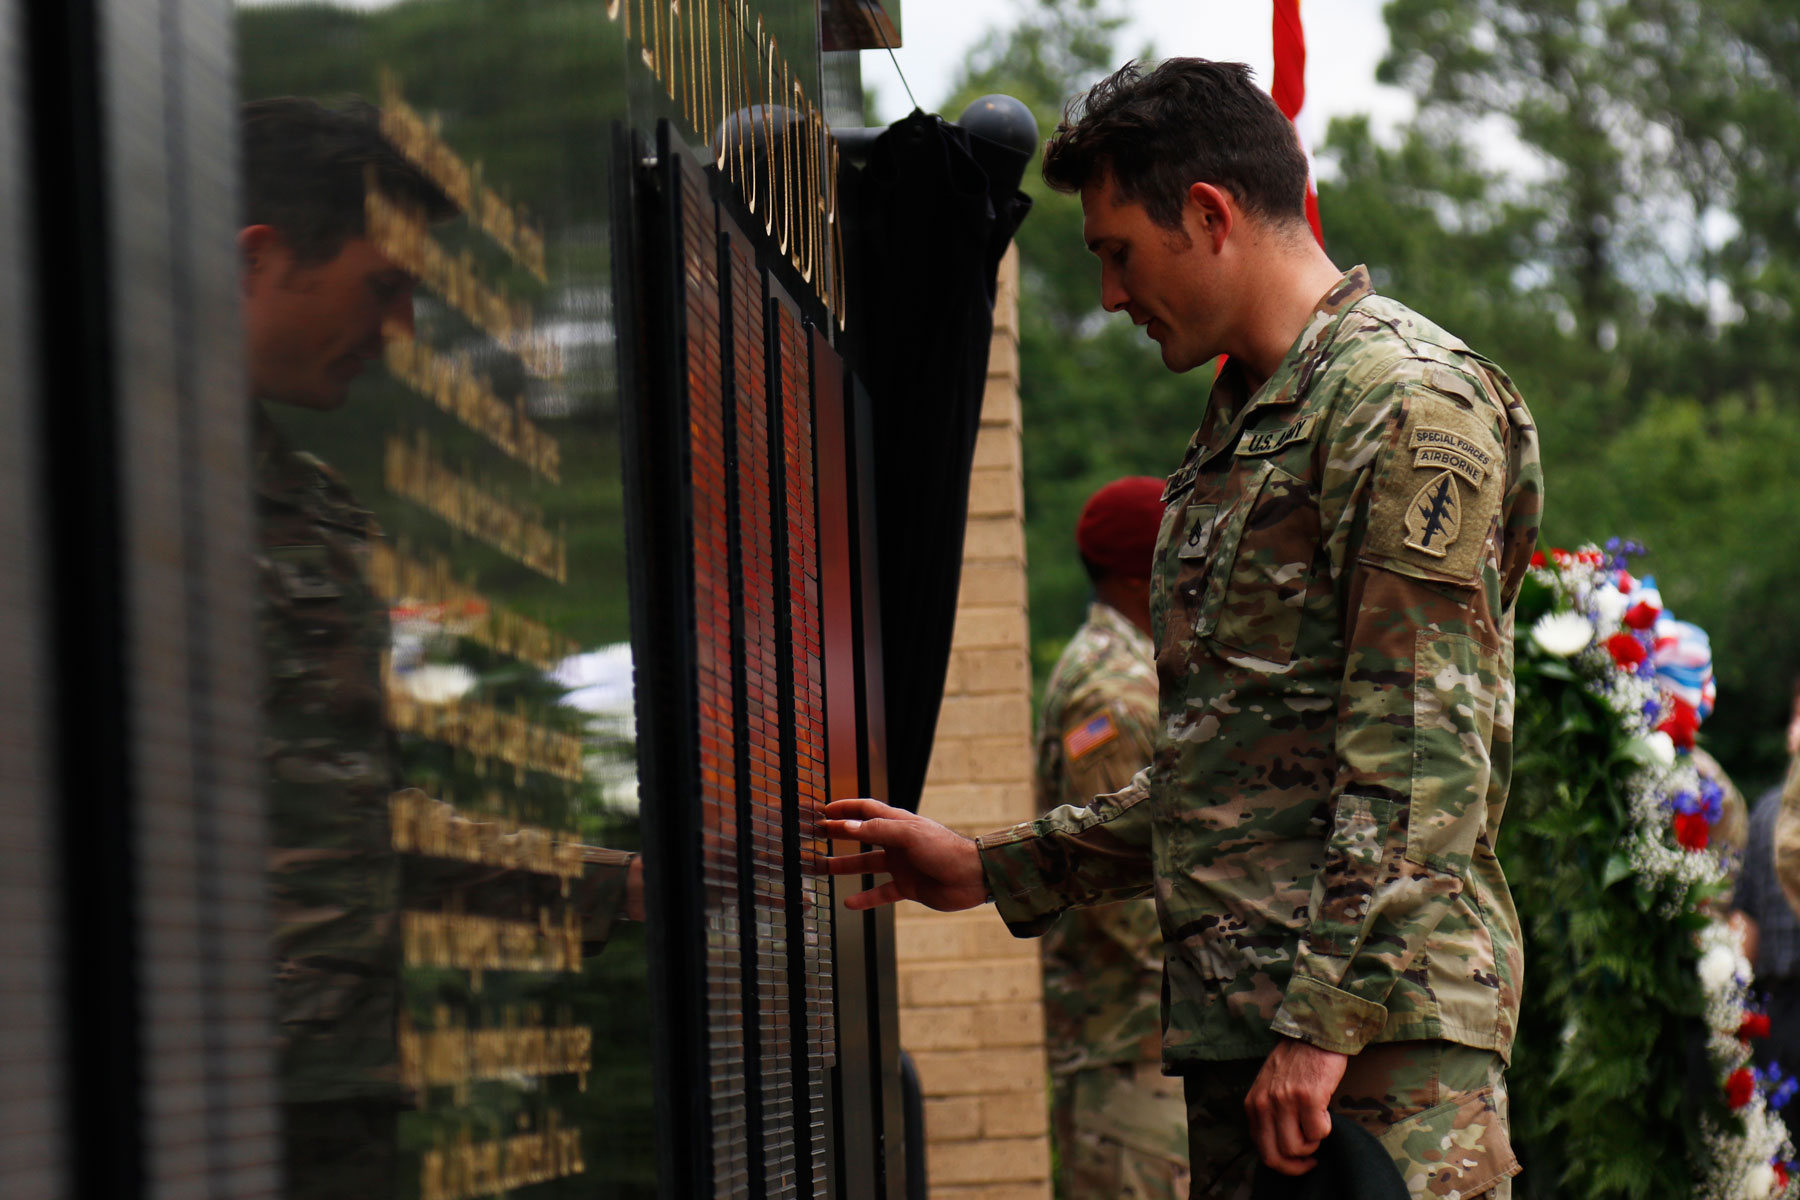 12 Army Special Operations Soldiers Honored in Fort Bragg Memorial